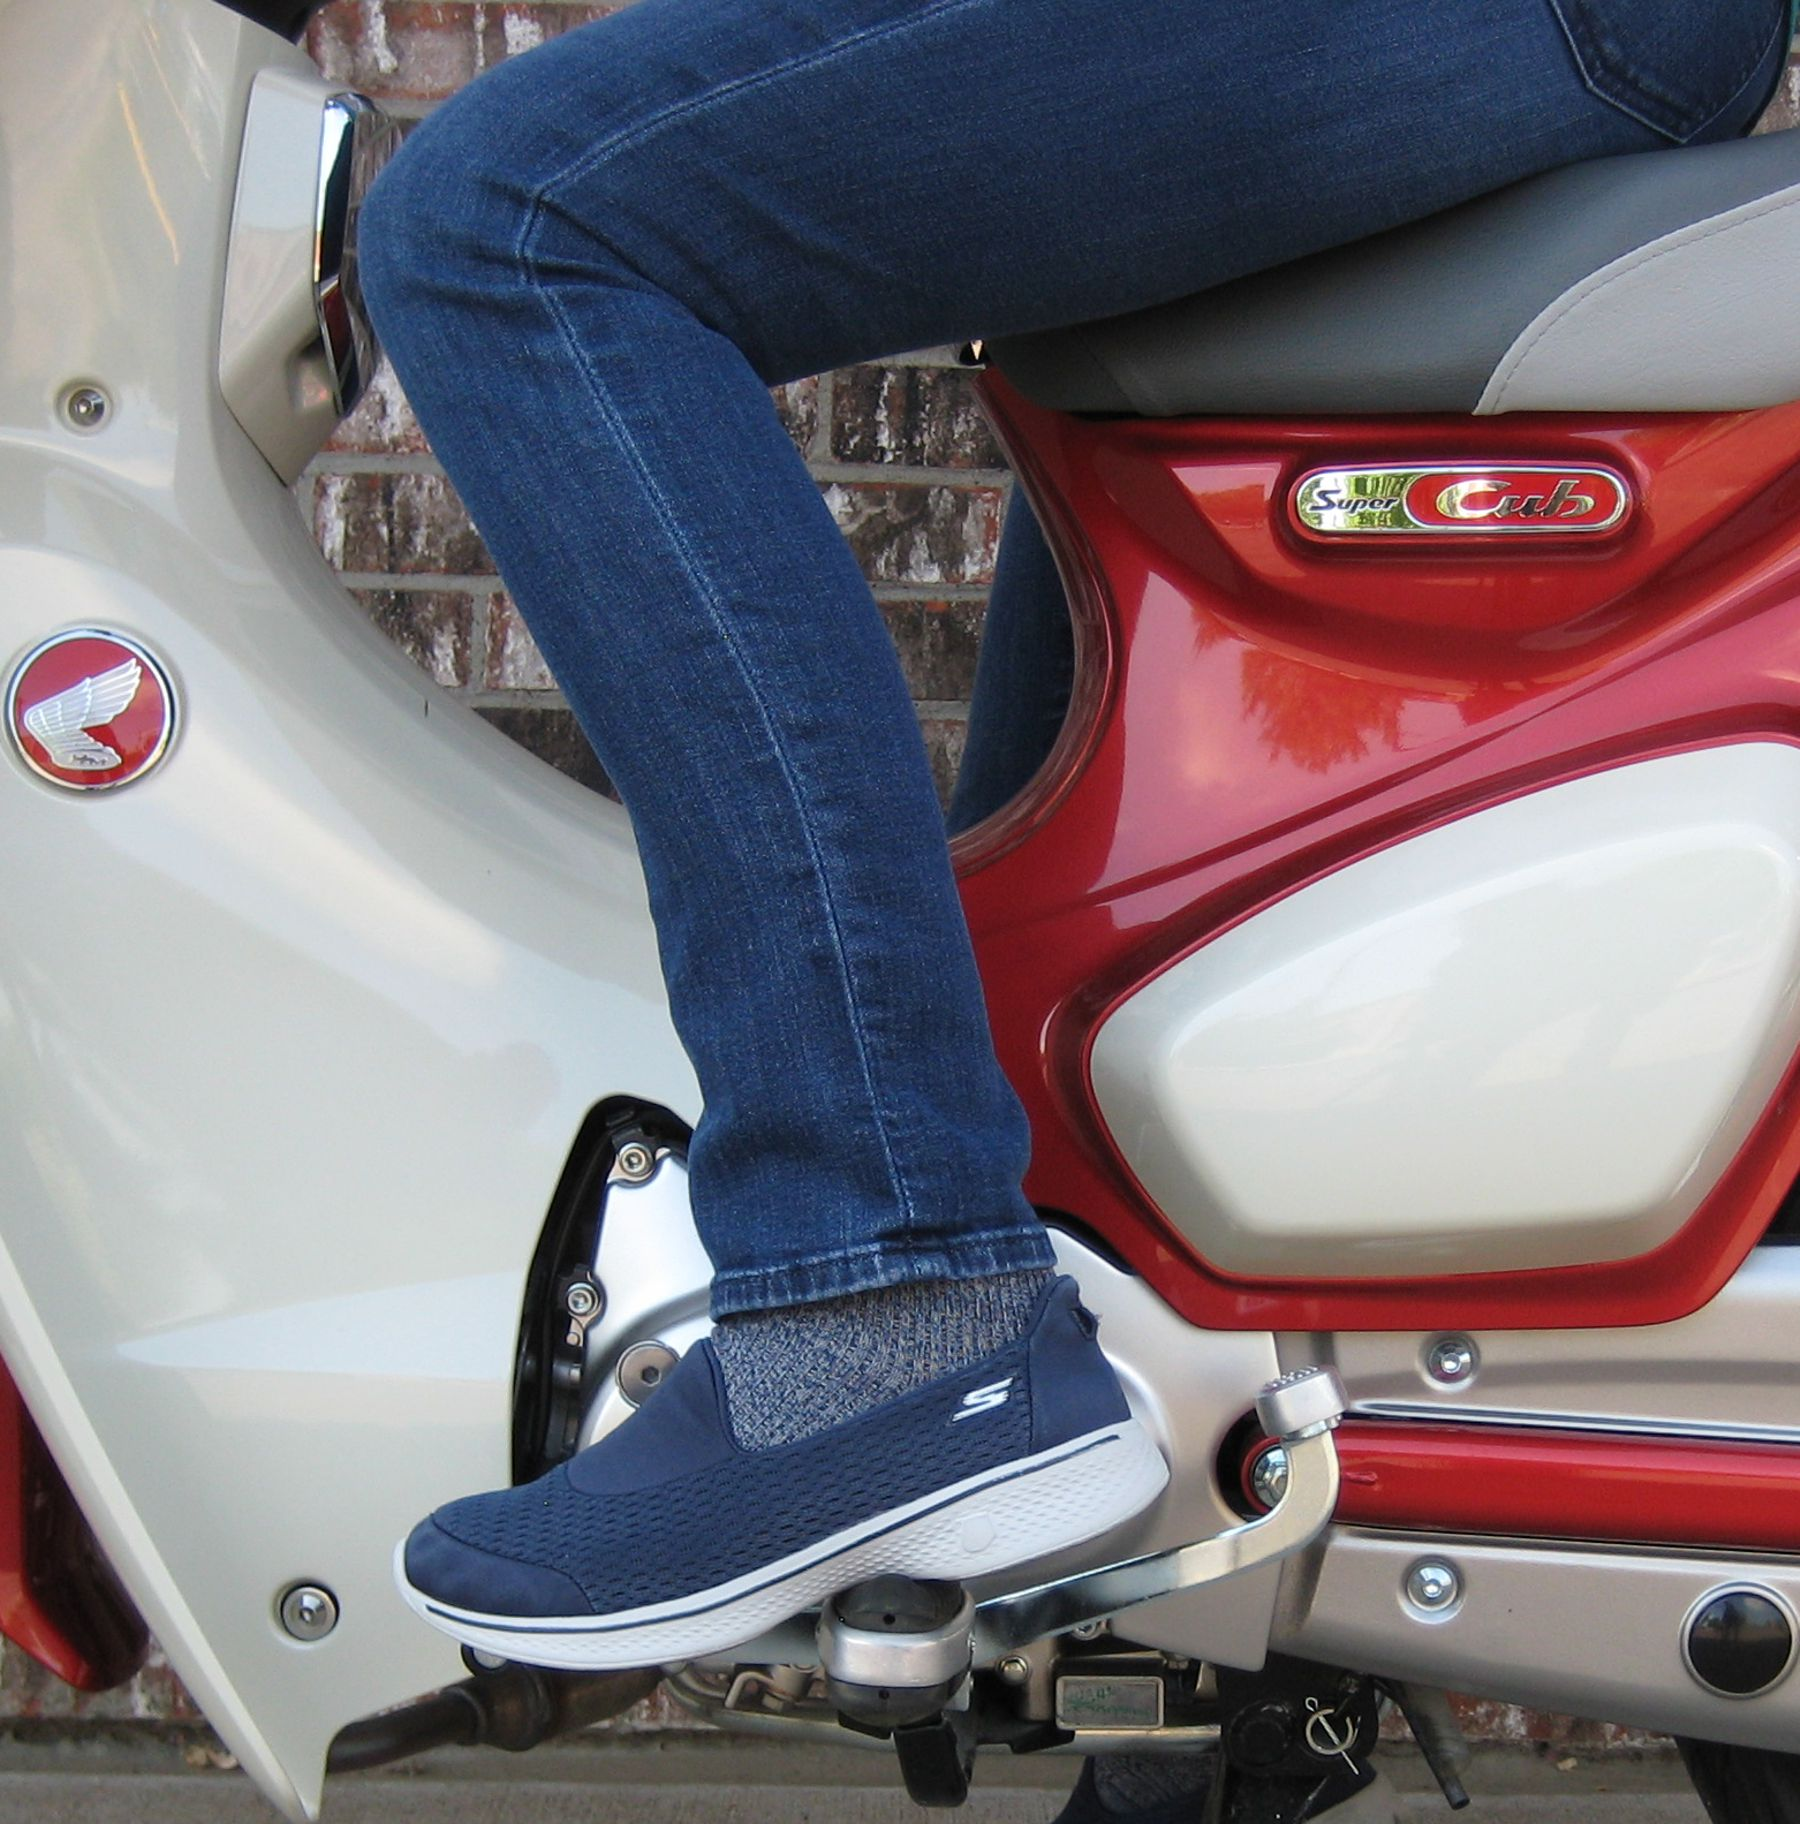 Rider foot in downshift position